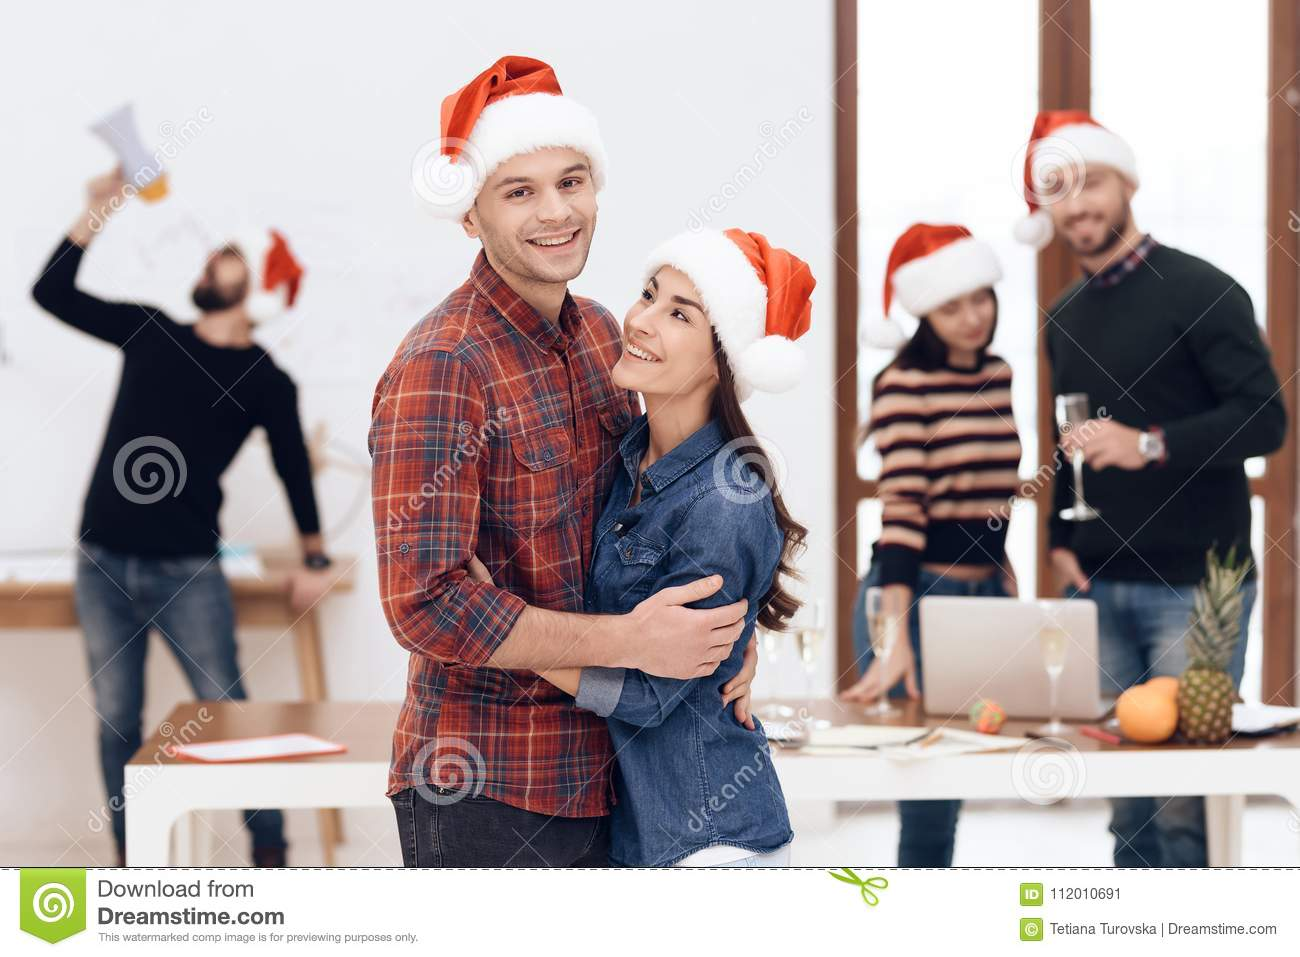 A young couple celebrates at a corporate celebration.